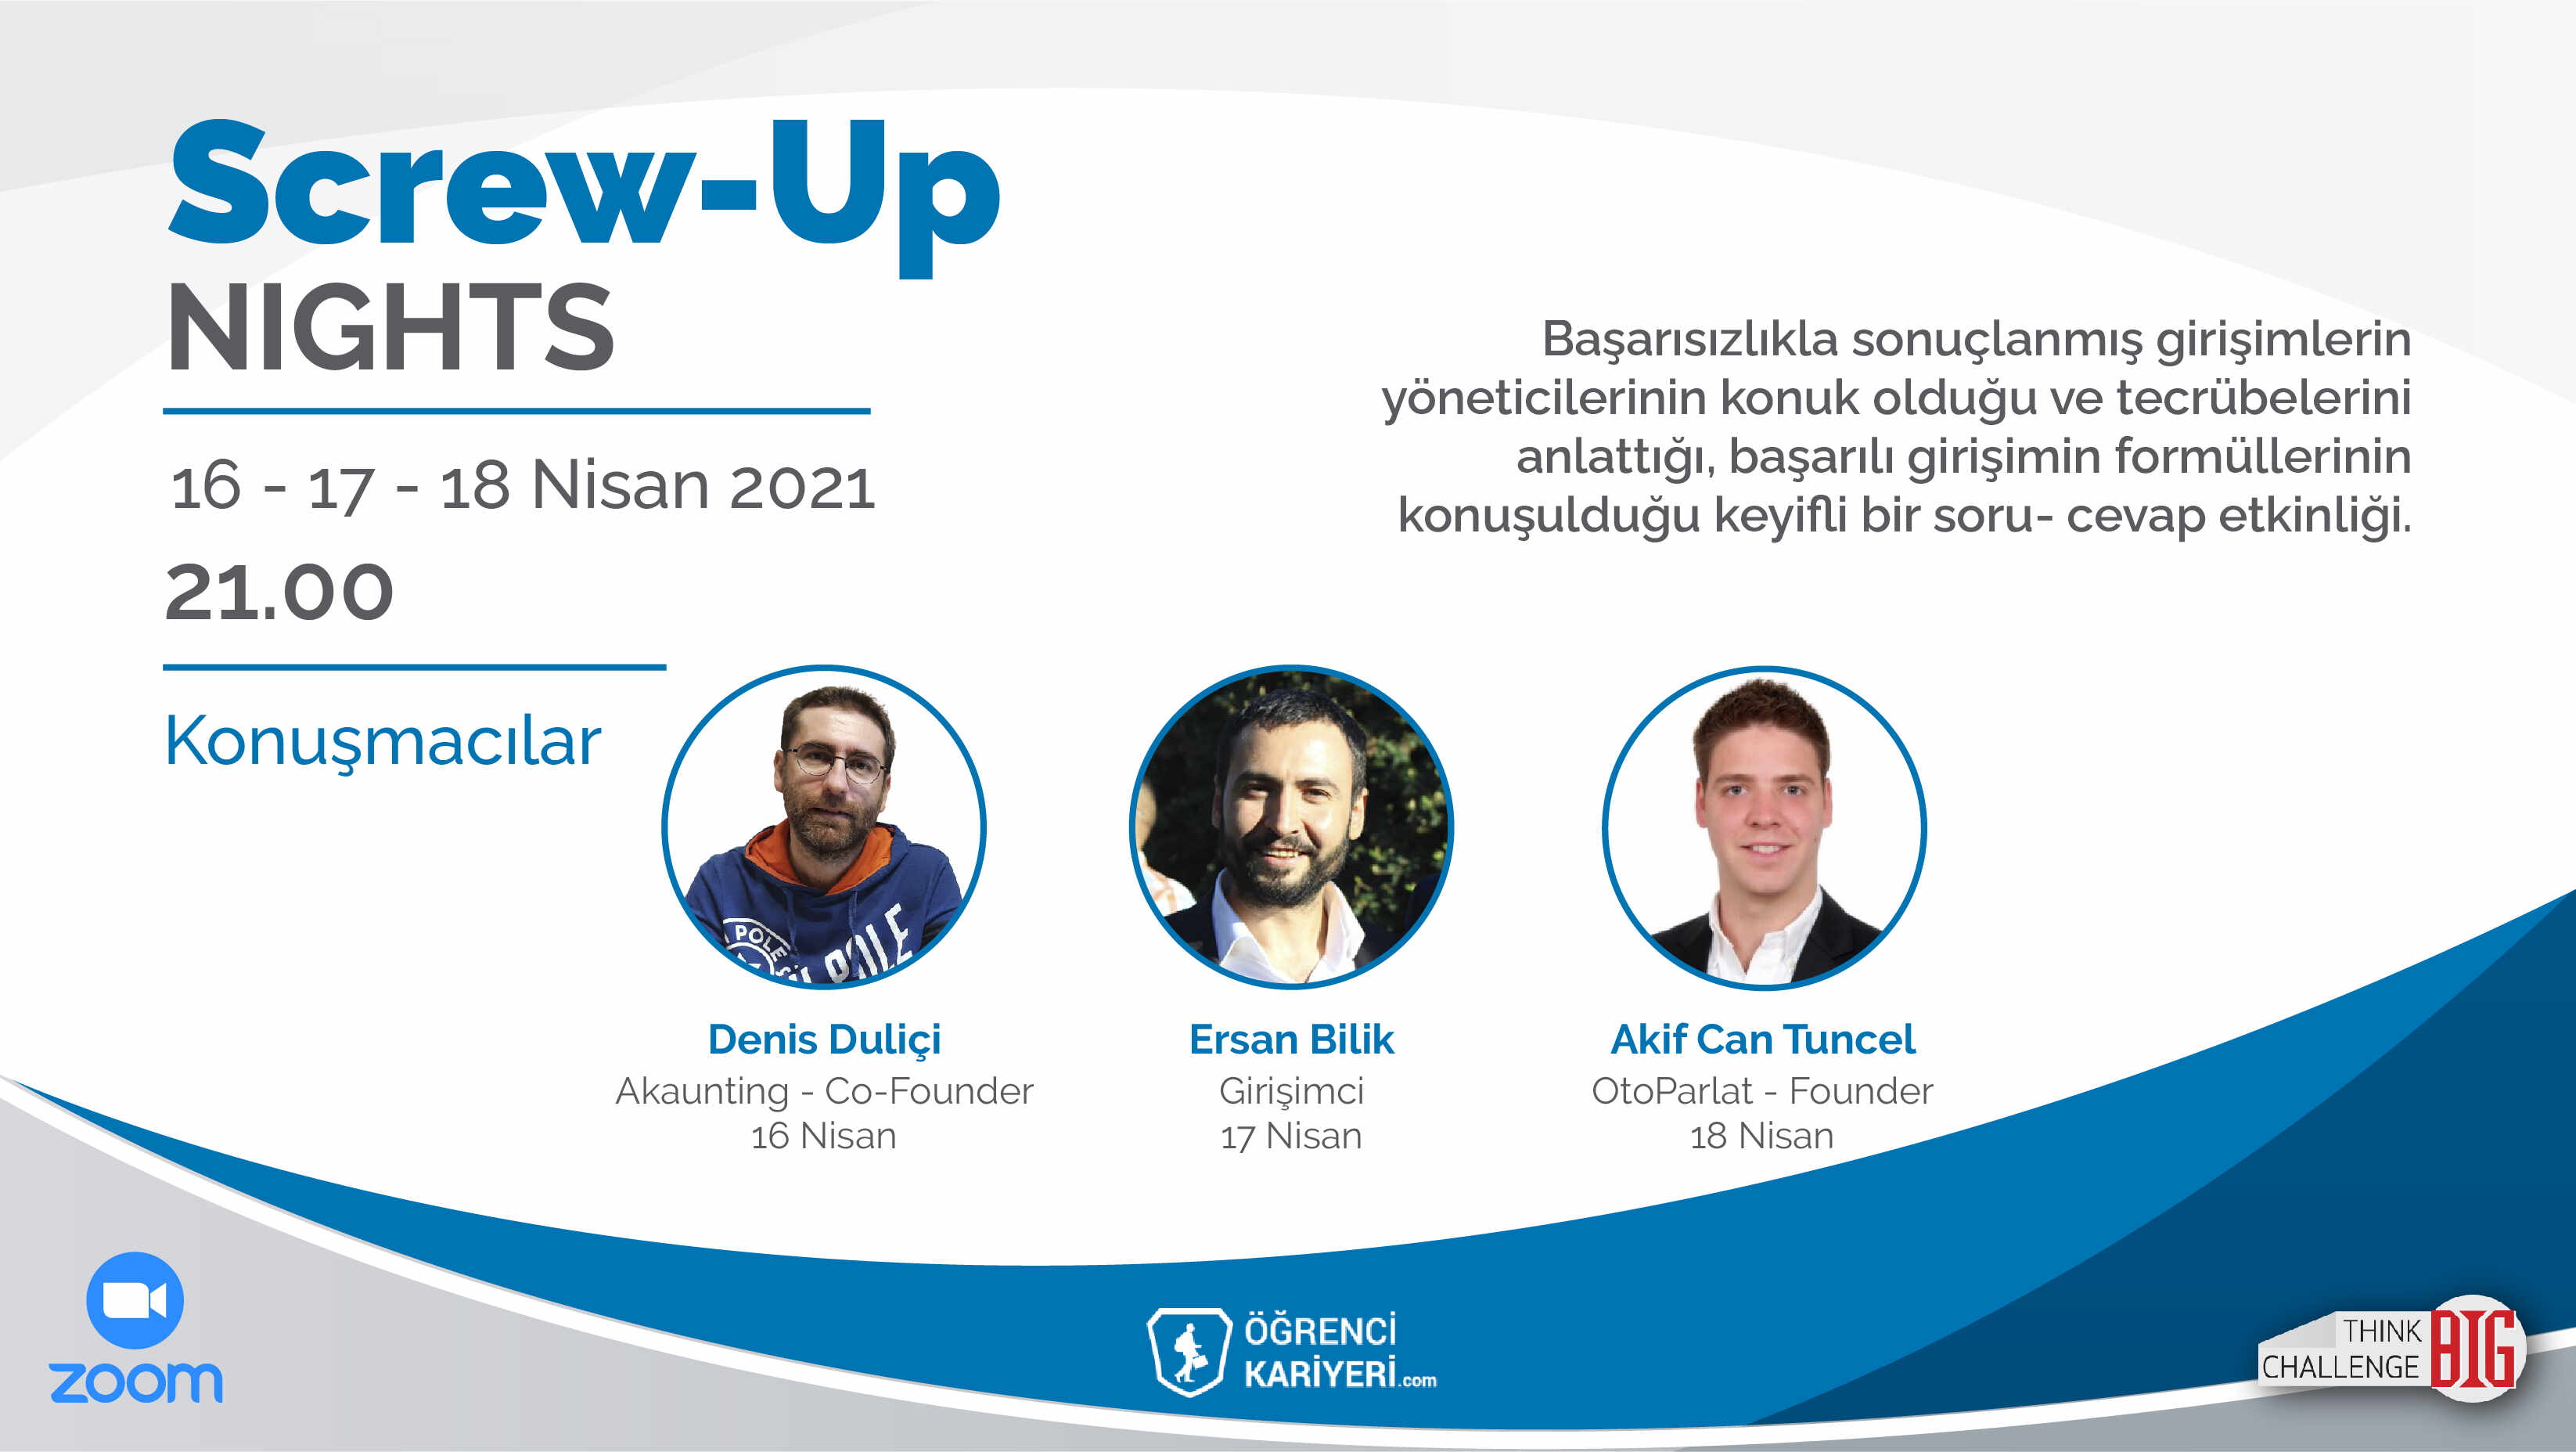 Screw-Up Nights Başlıyor!